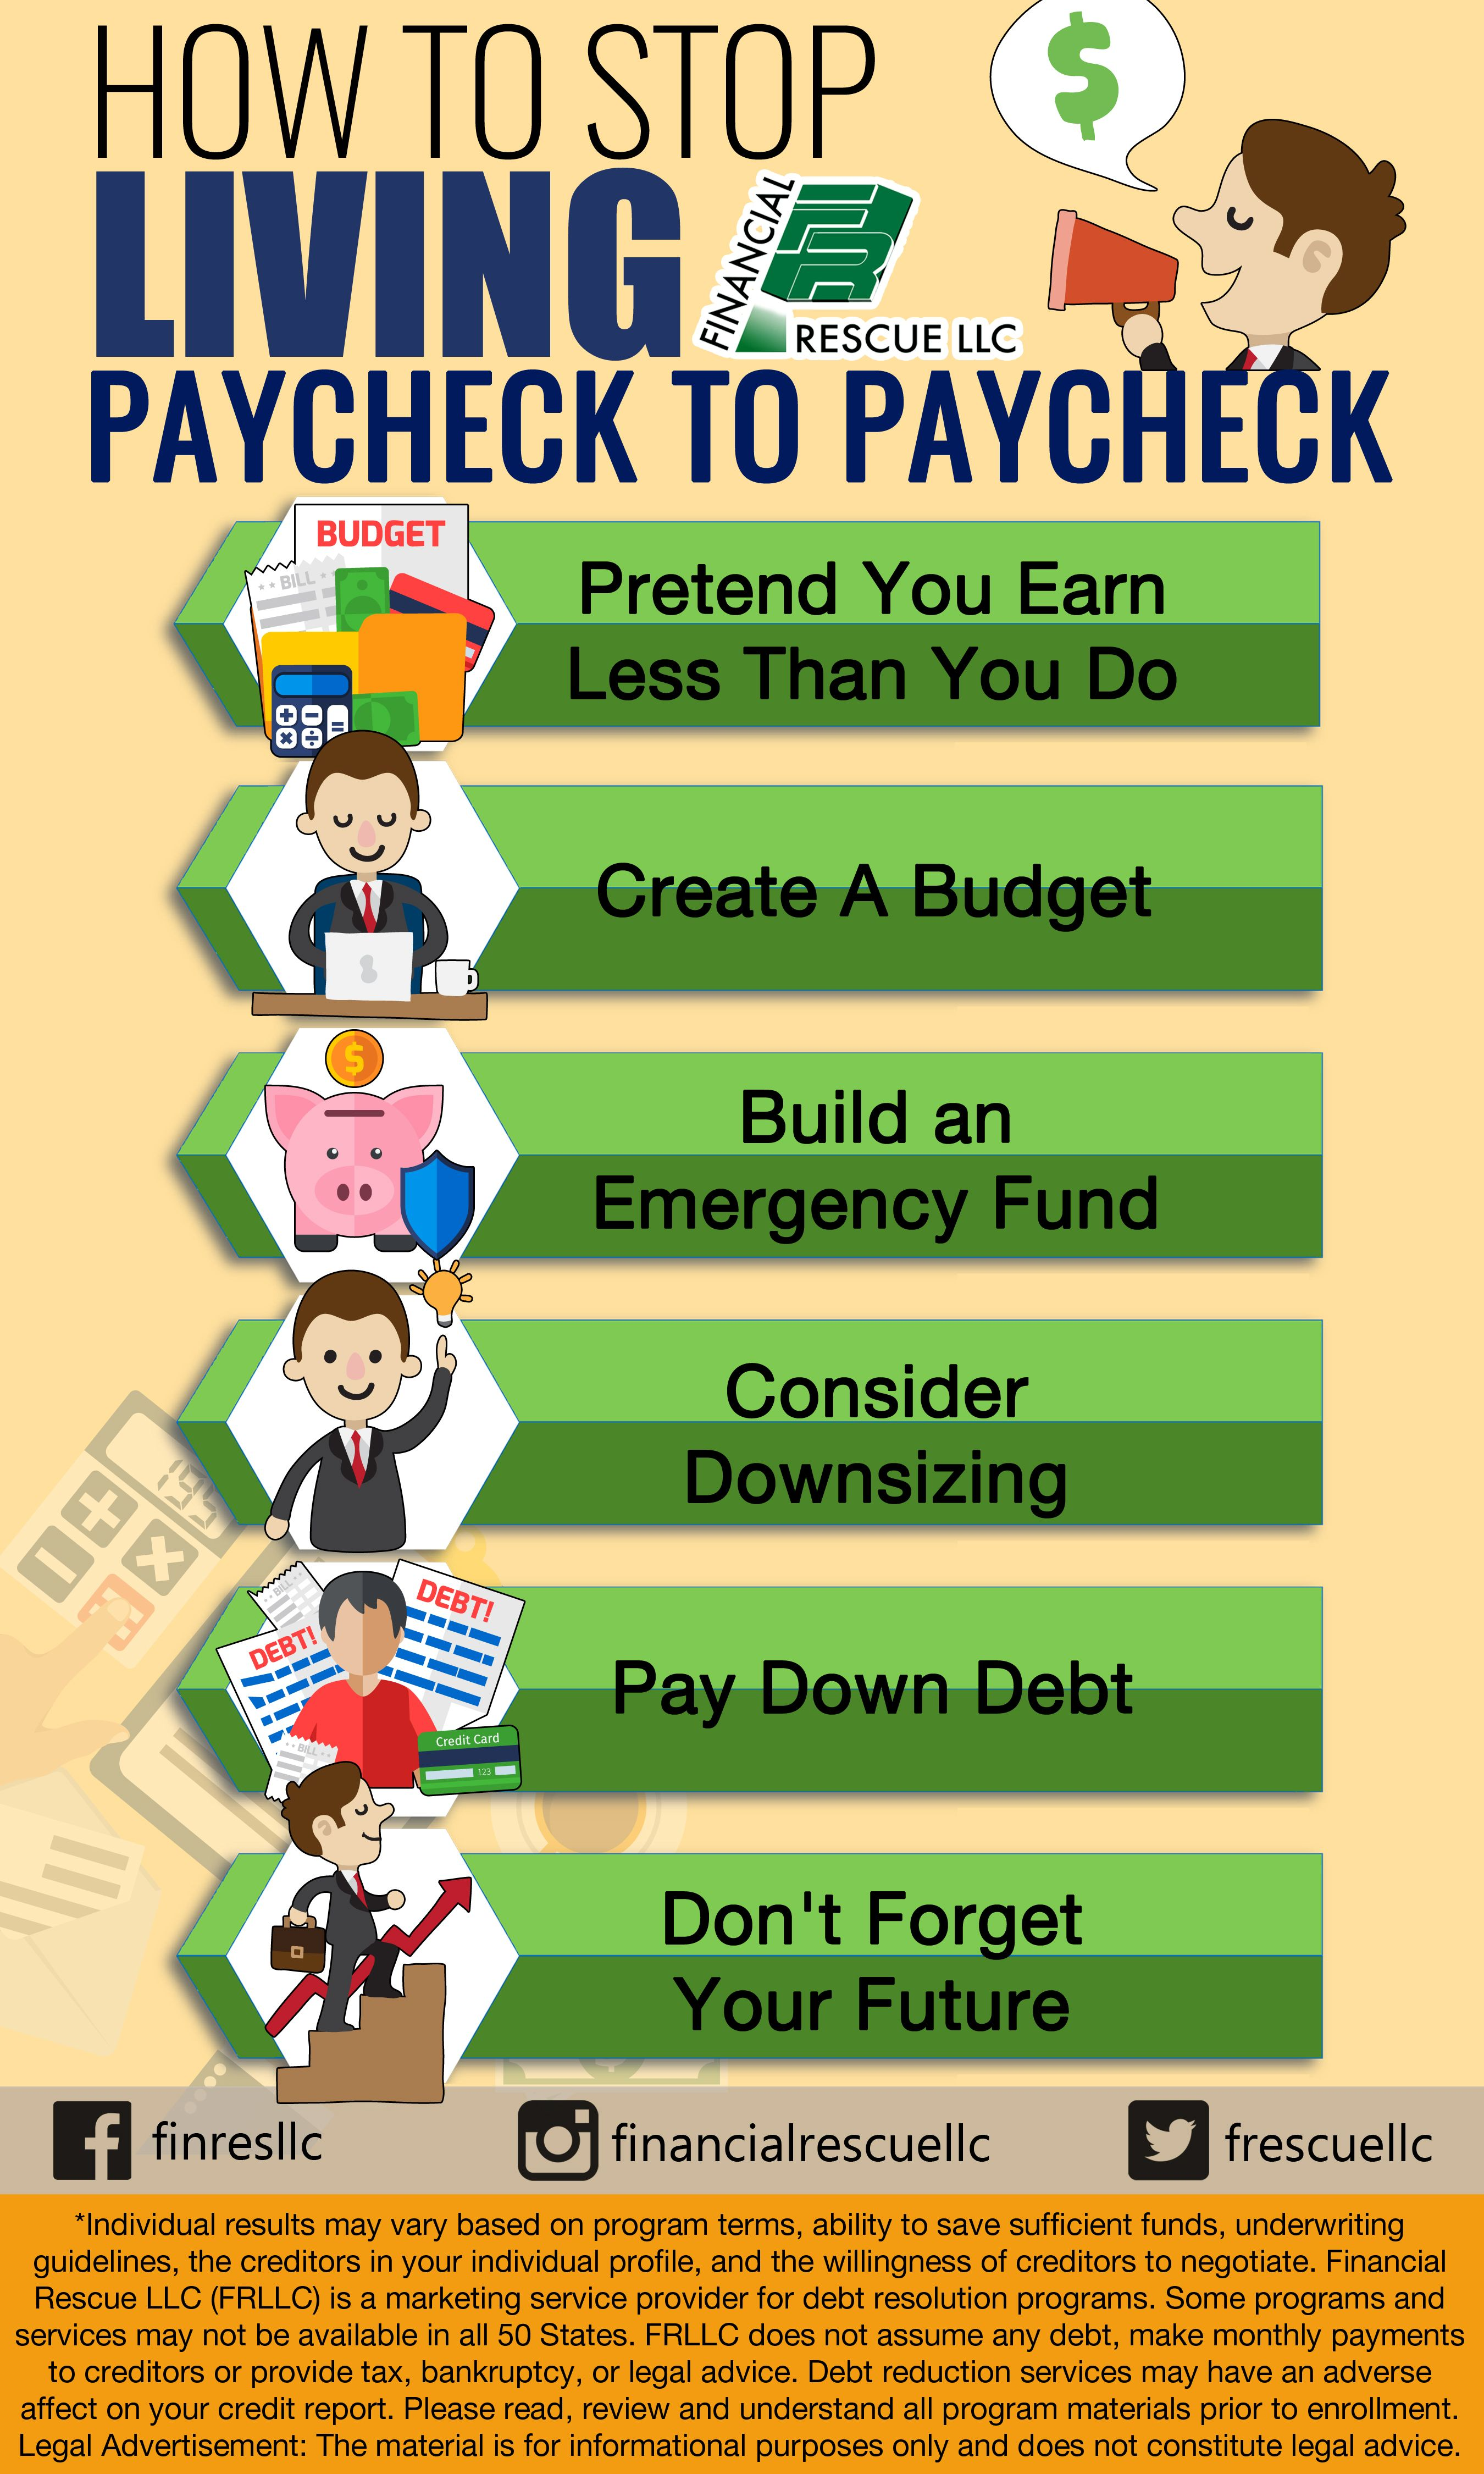 How To Stop Living Paycheck To Paycheck Money Poor Rich Tax Blog Financial Finance Help